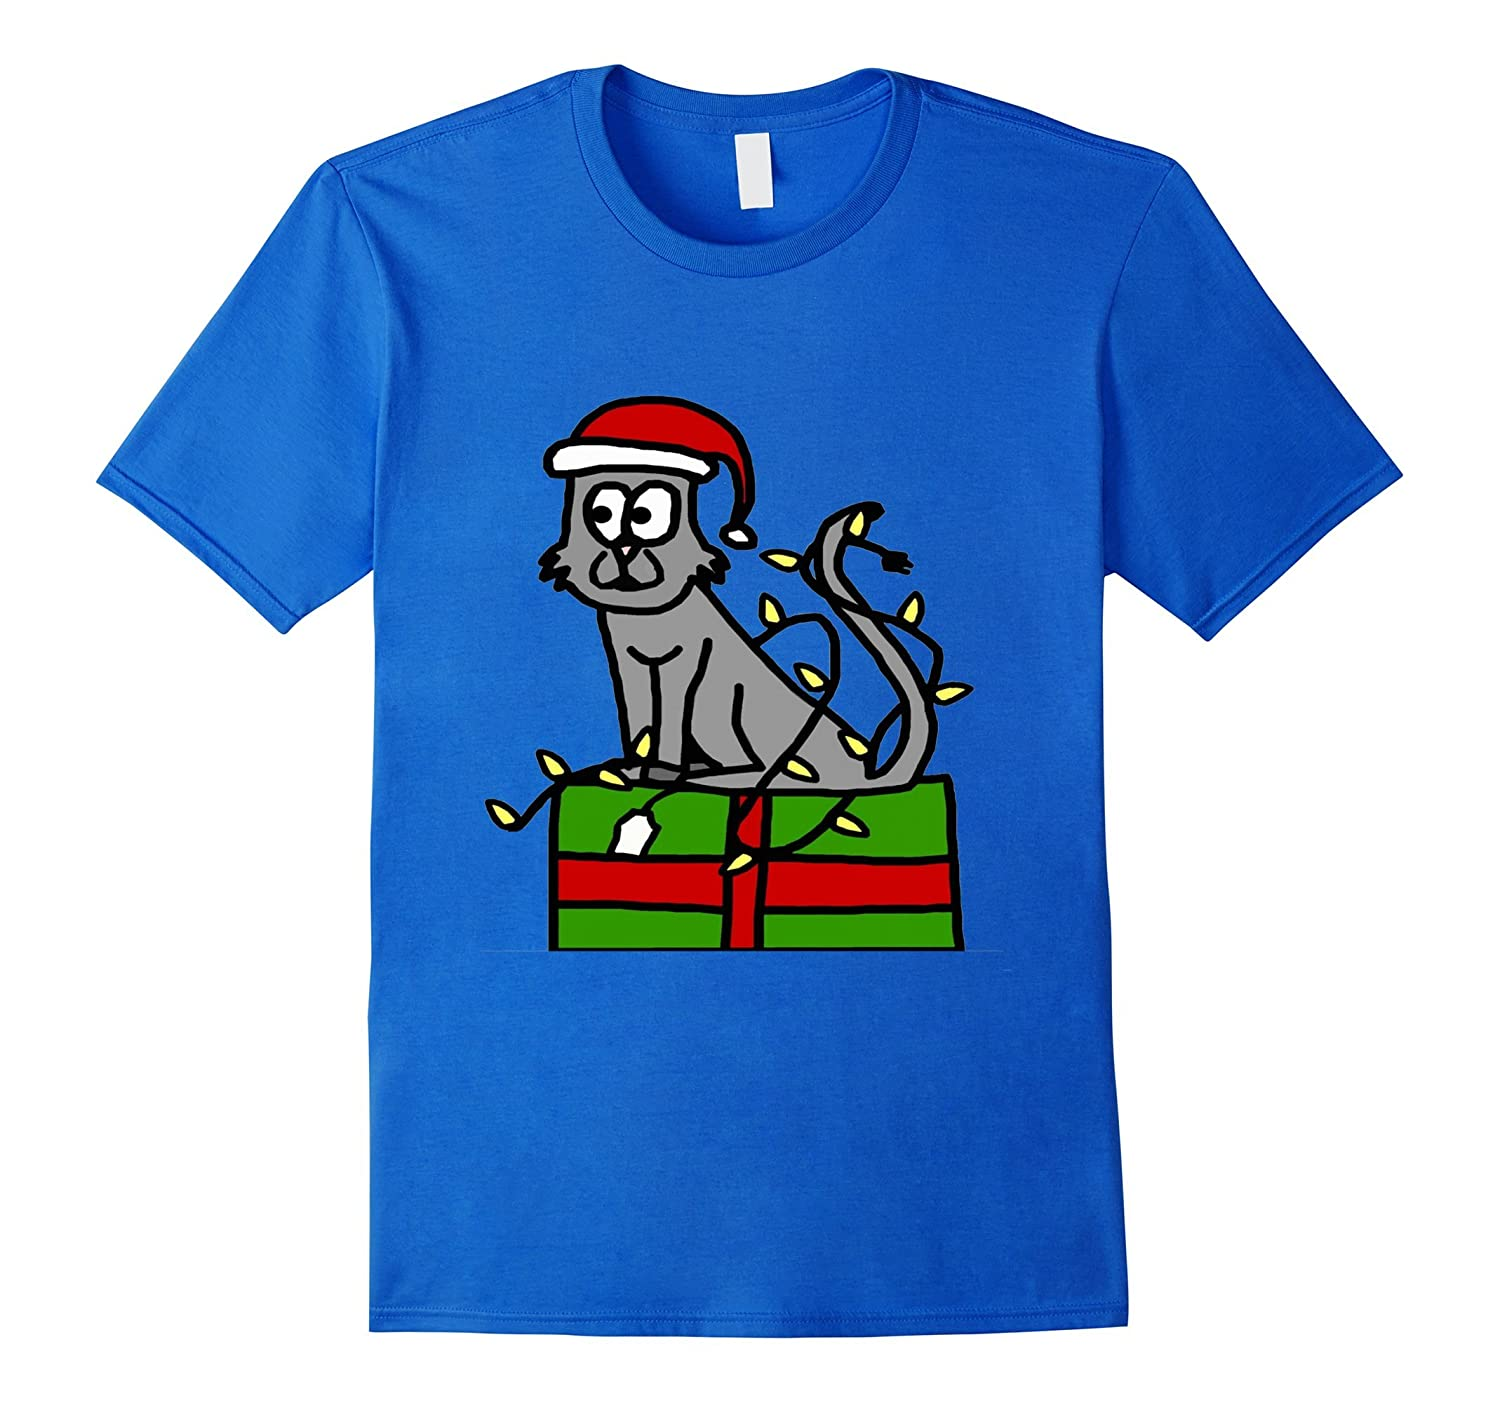 christmas gift and cat t shirts for men women boys girls cl - Christmas Shirts For Boys